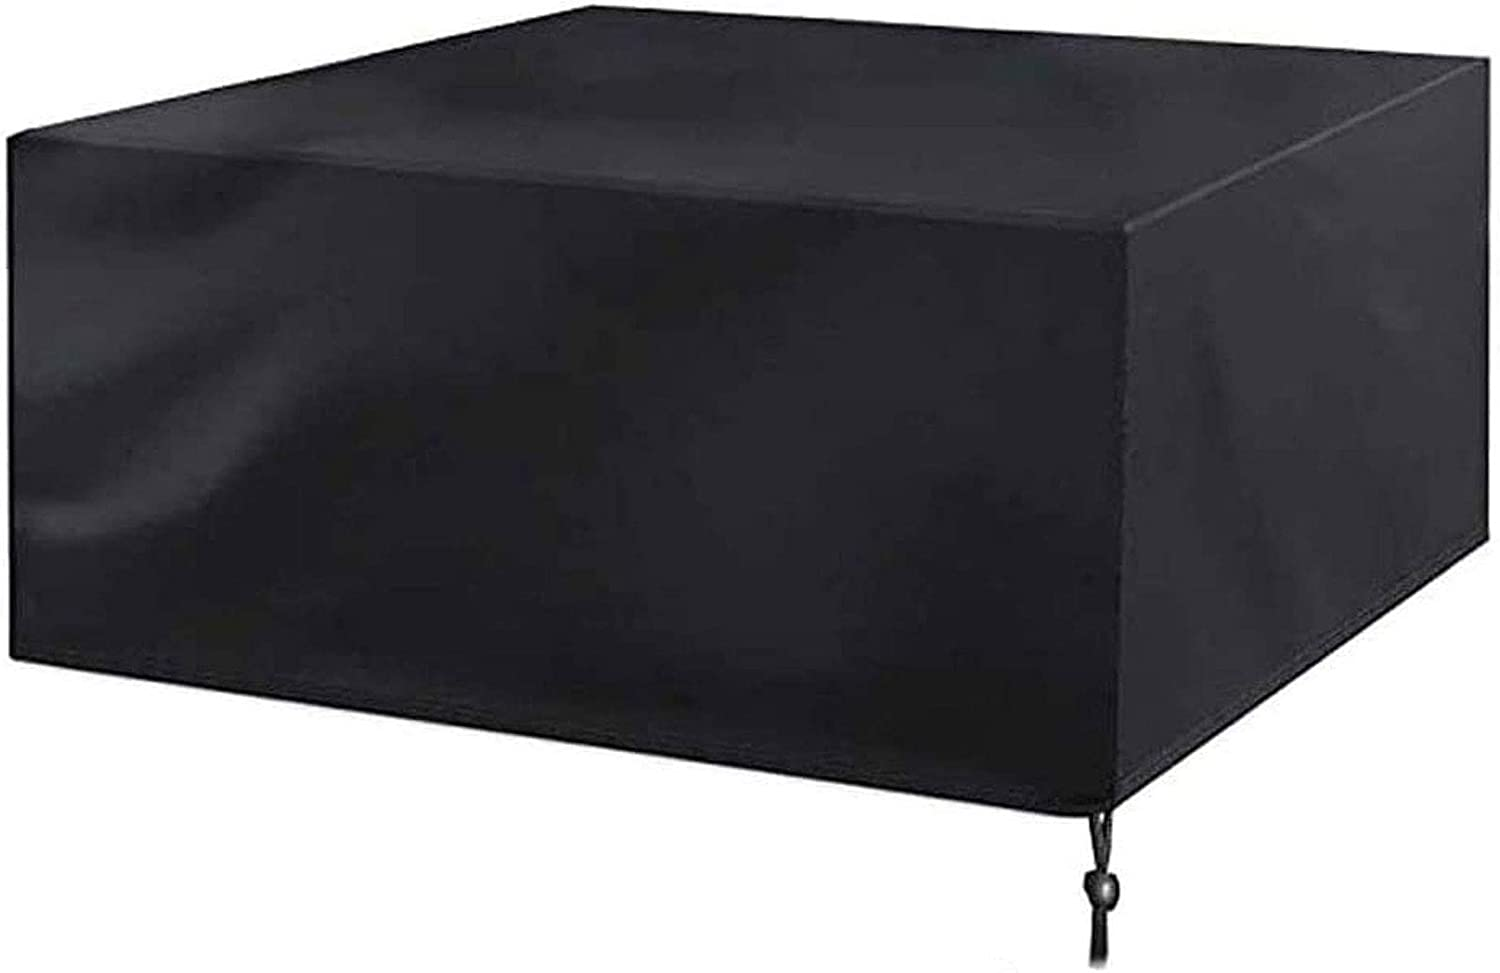 Patio Furniture Covers Square An Special sale item Waterproof Quality inspection Table